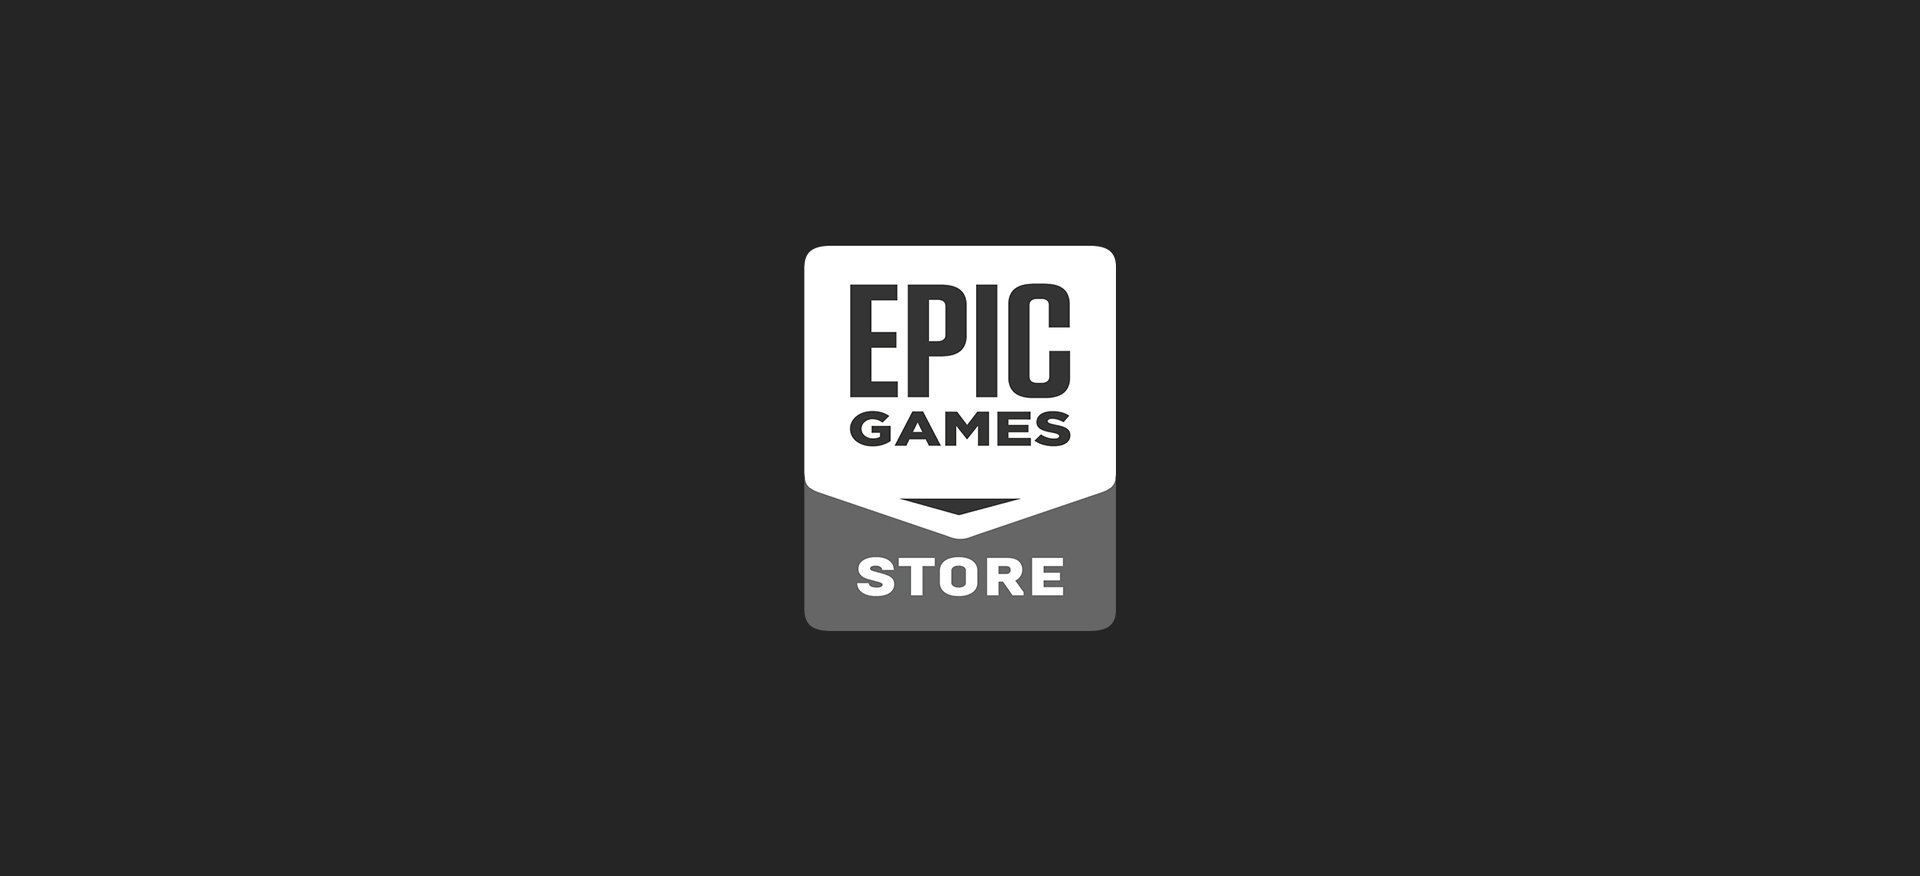 Epic Games Store Will Move Away From Releasing Exclusive Game Titles